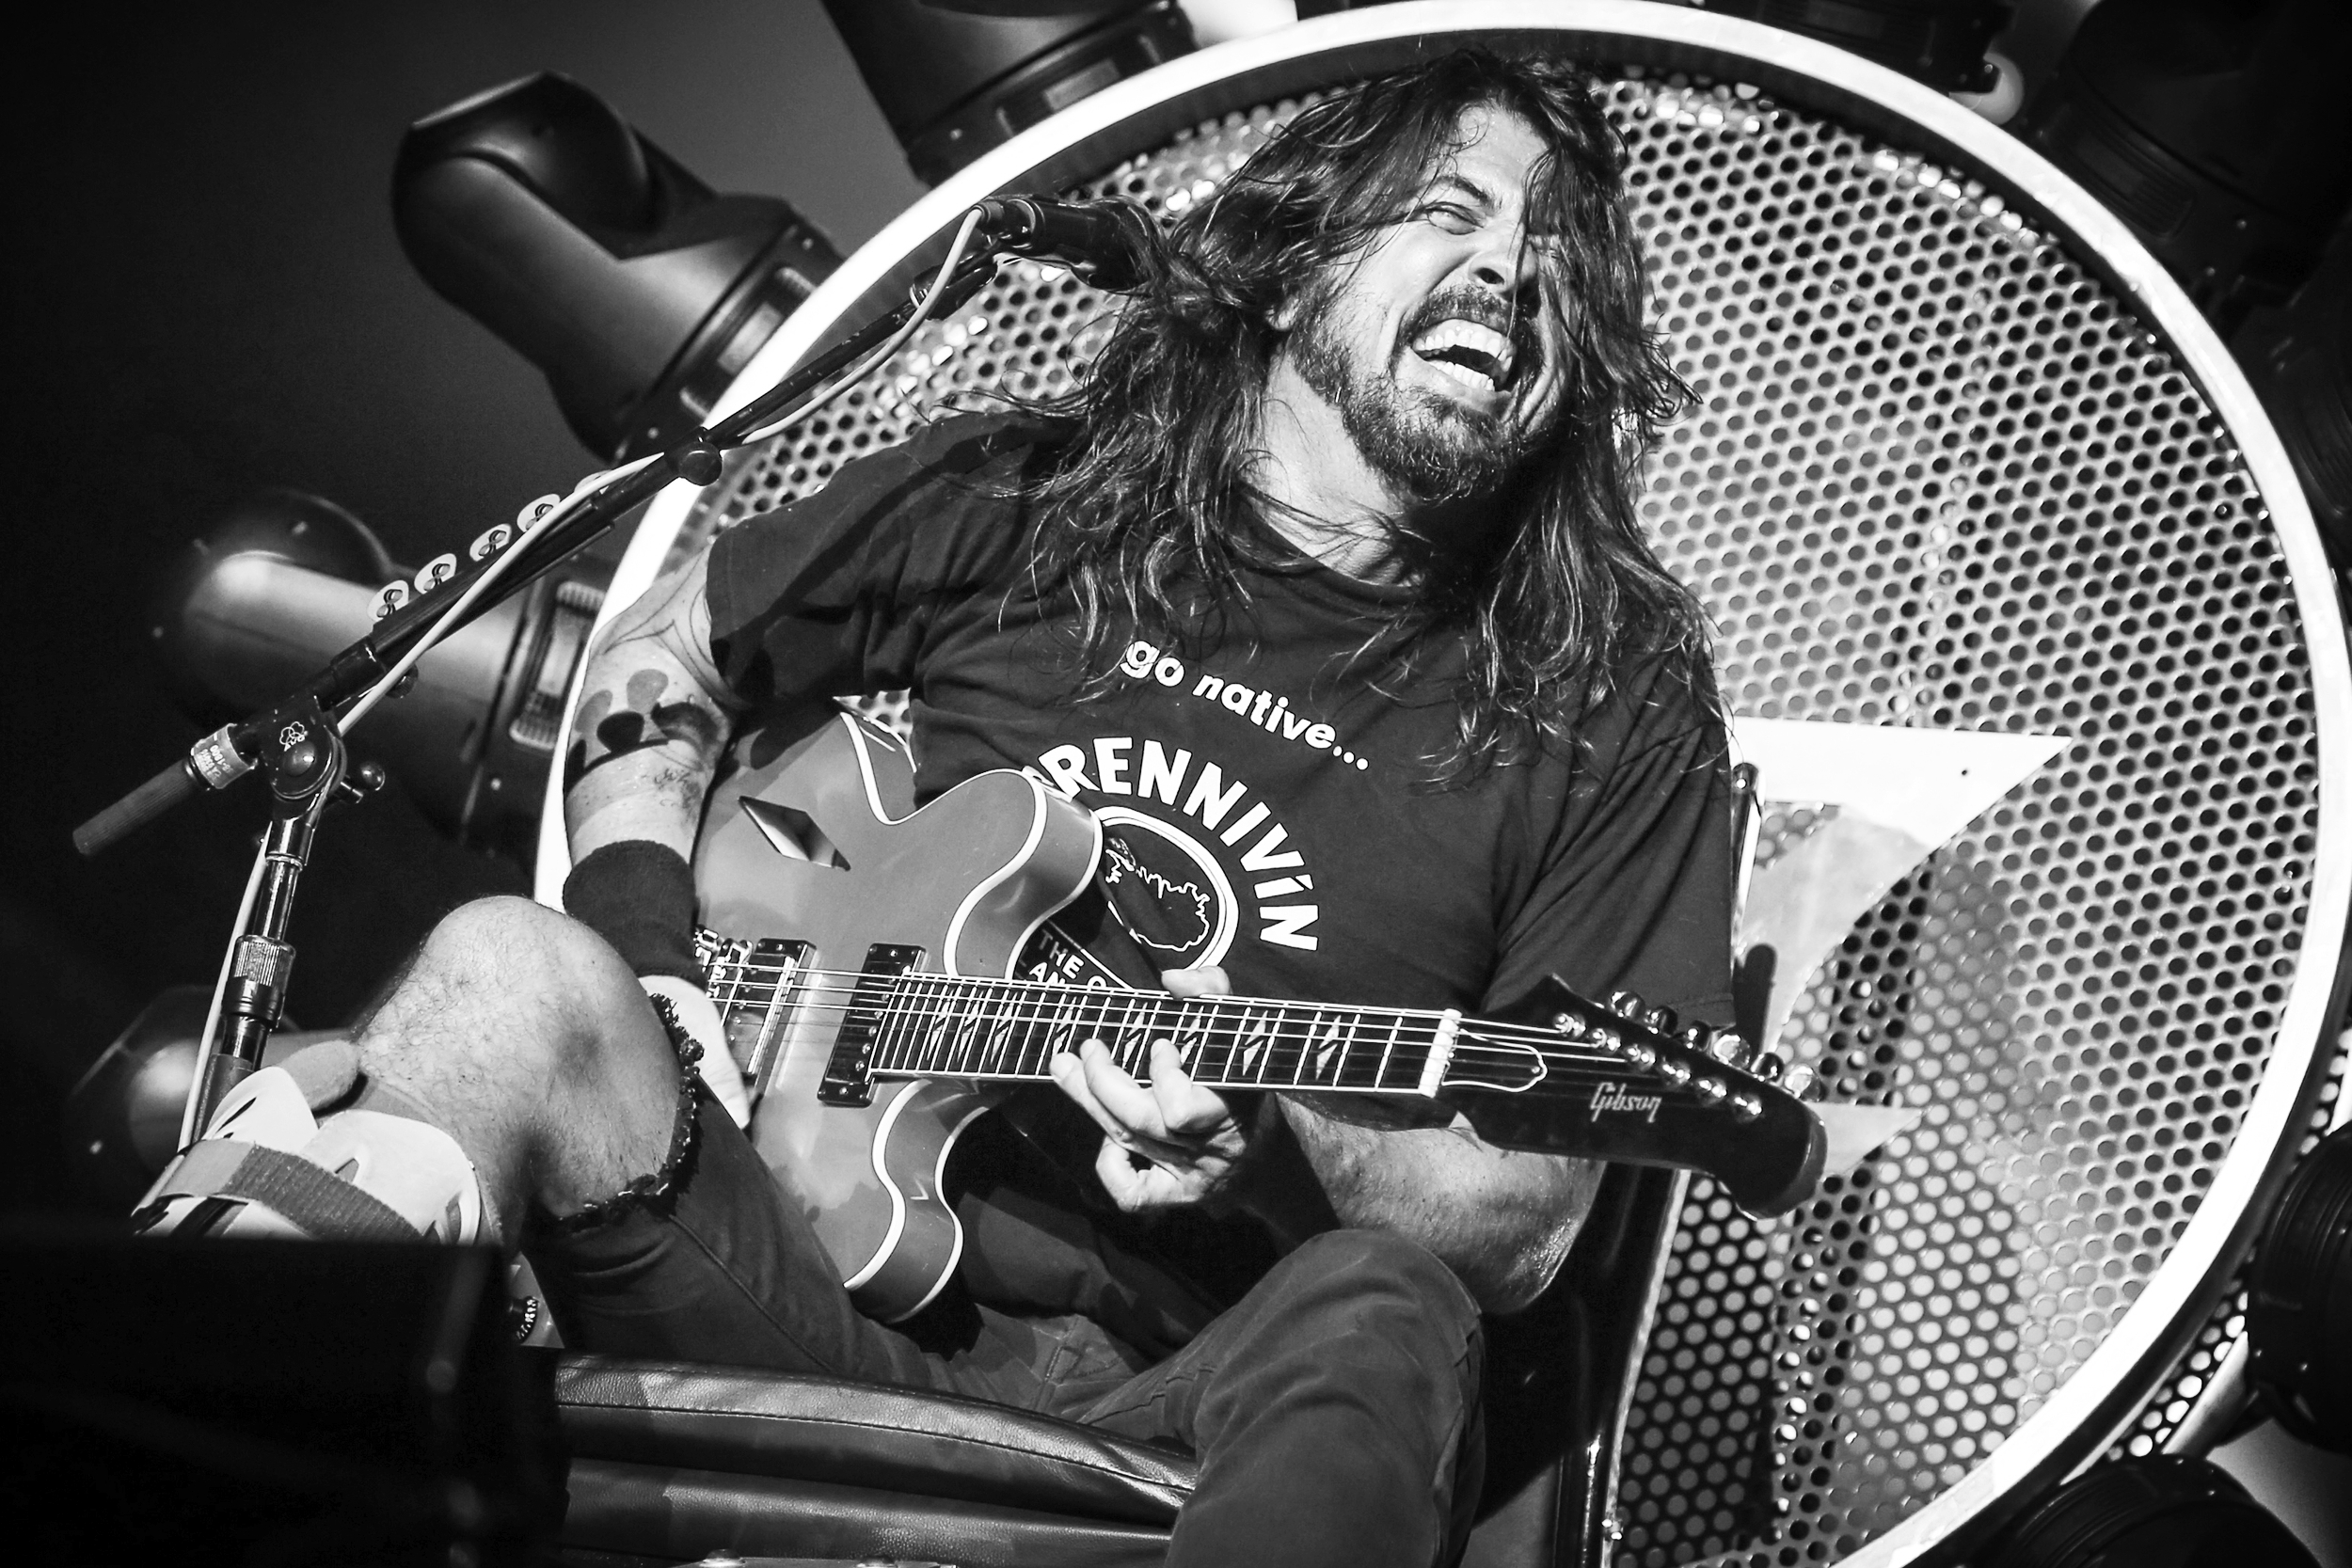 FooFighters_092215_0188.jpg